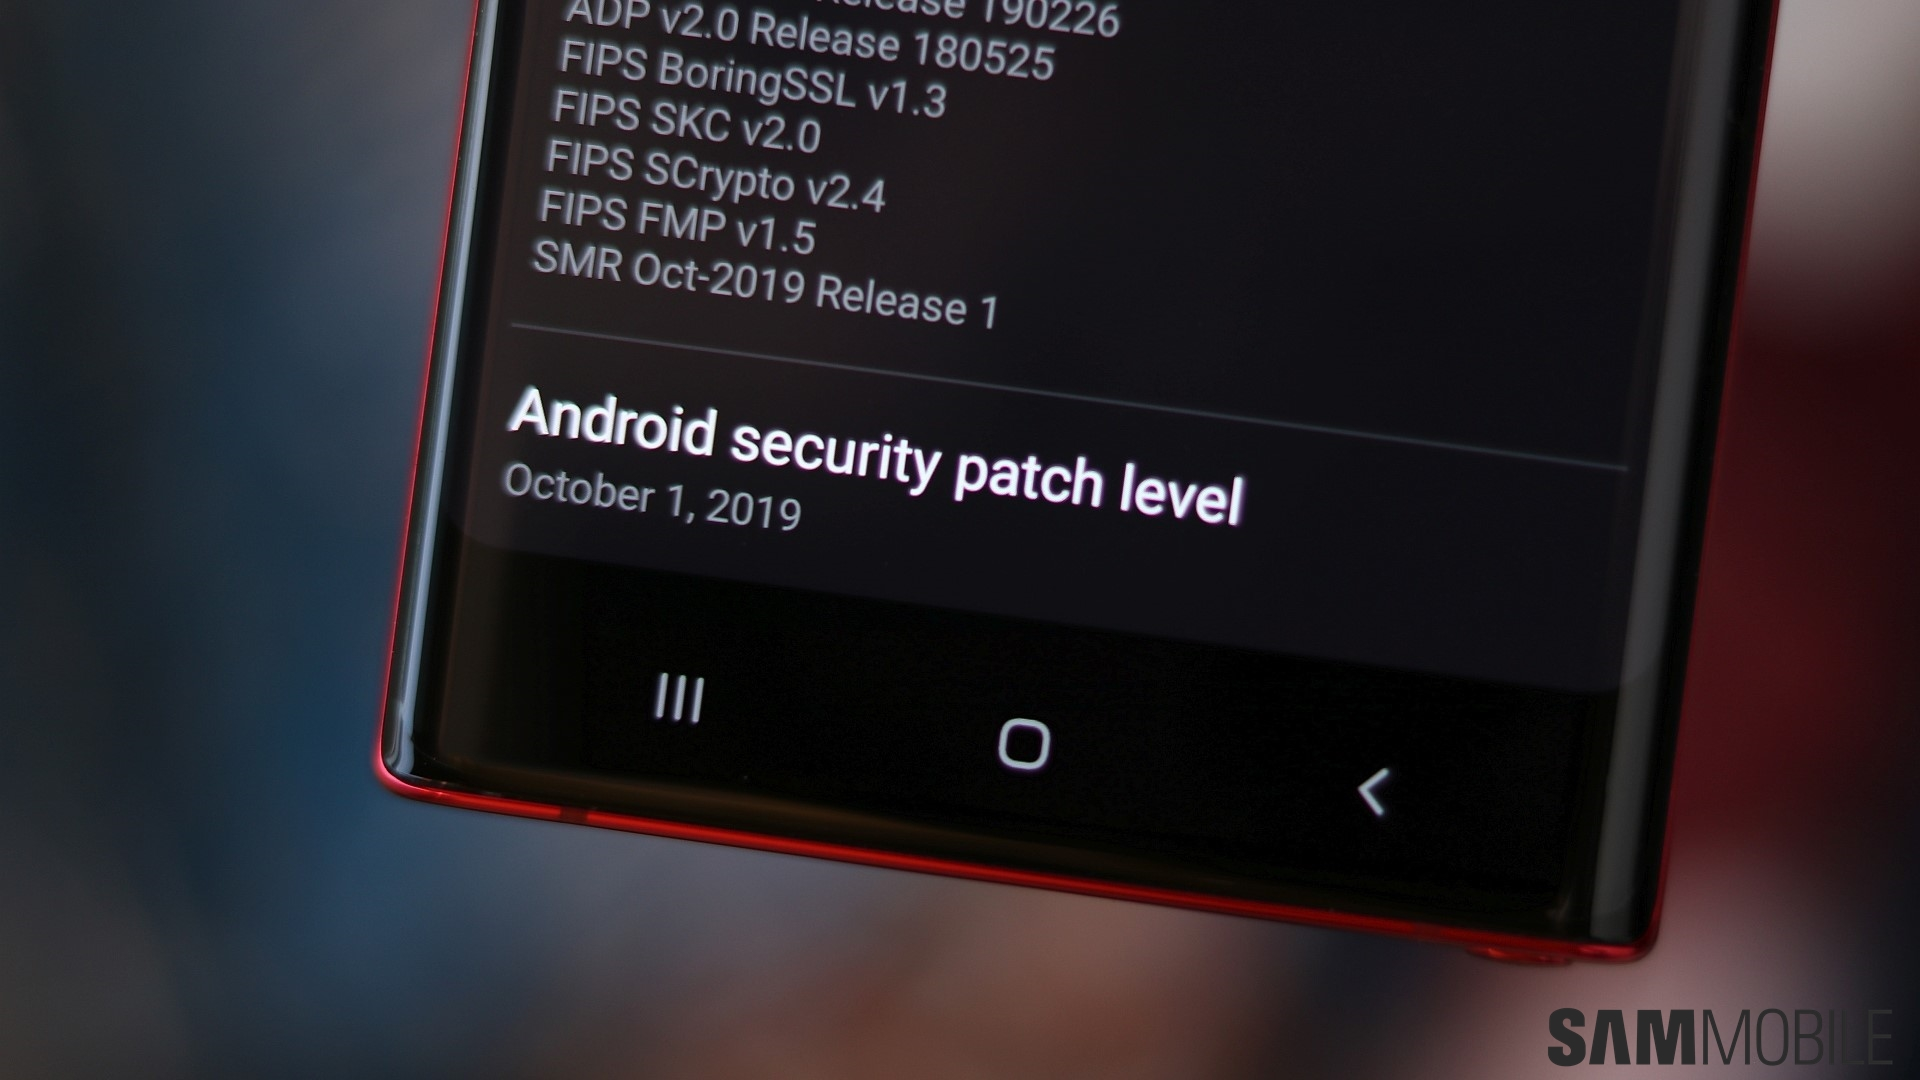 Galaxy Note 10 and Note 10+ get October security update